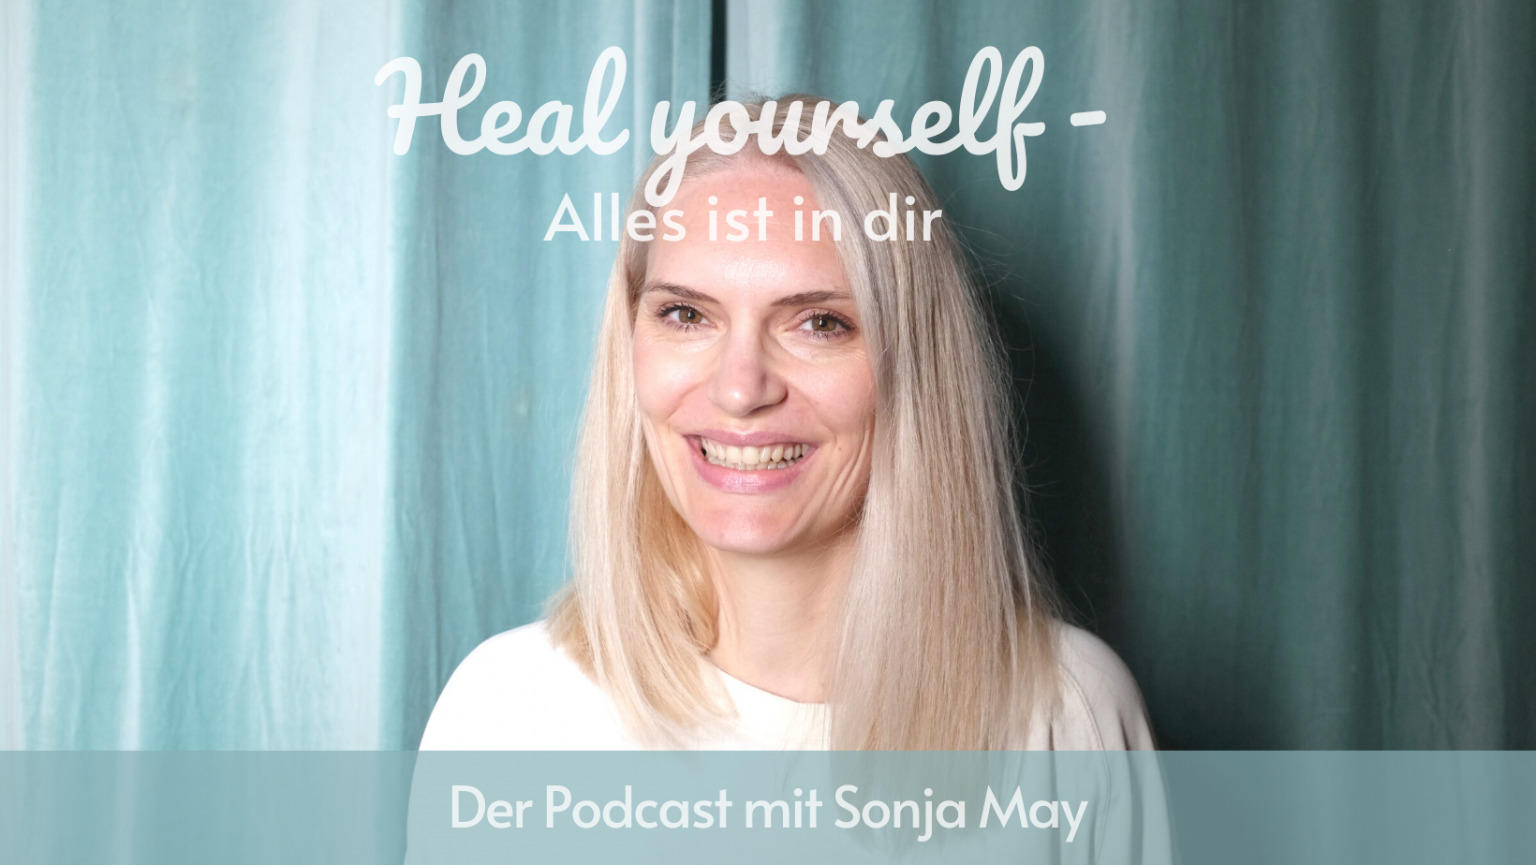 Podcast-Cover mit Sonja May